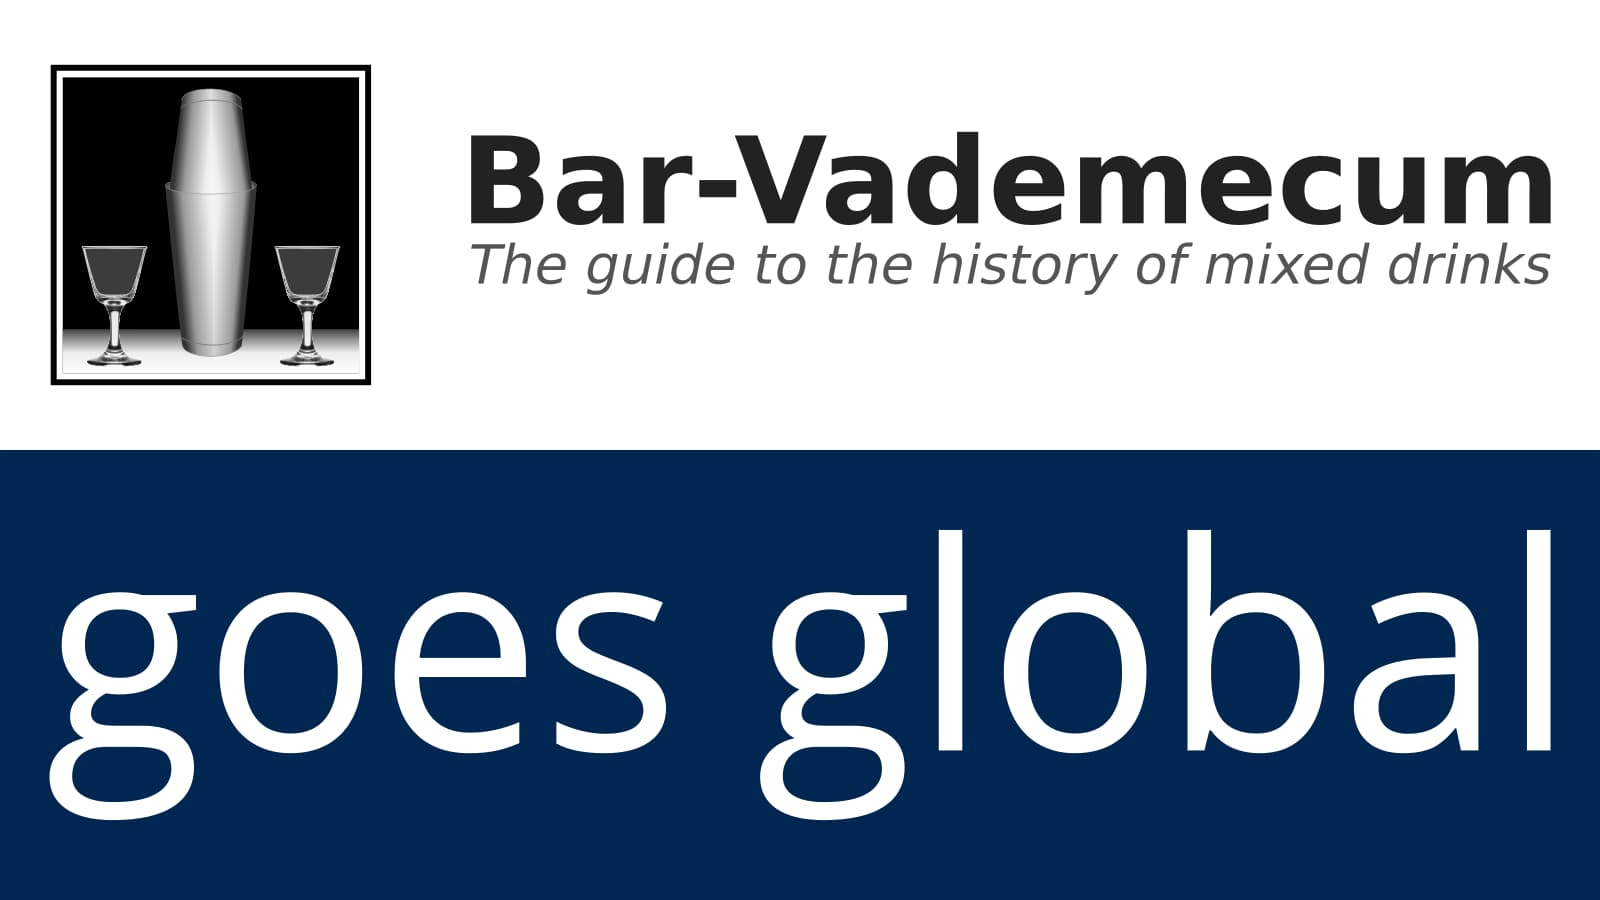 Bar-Vademecum goes global